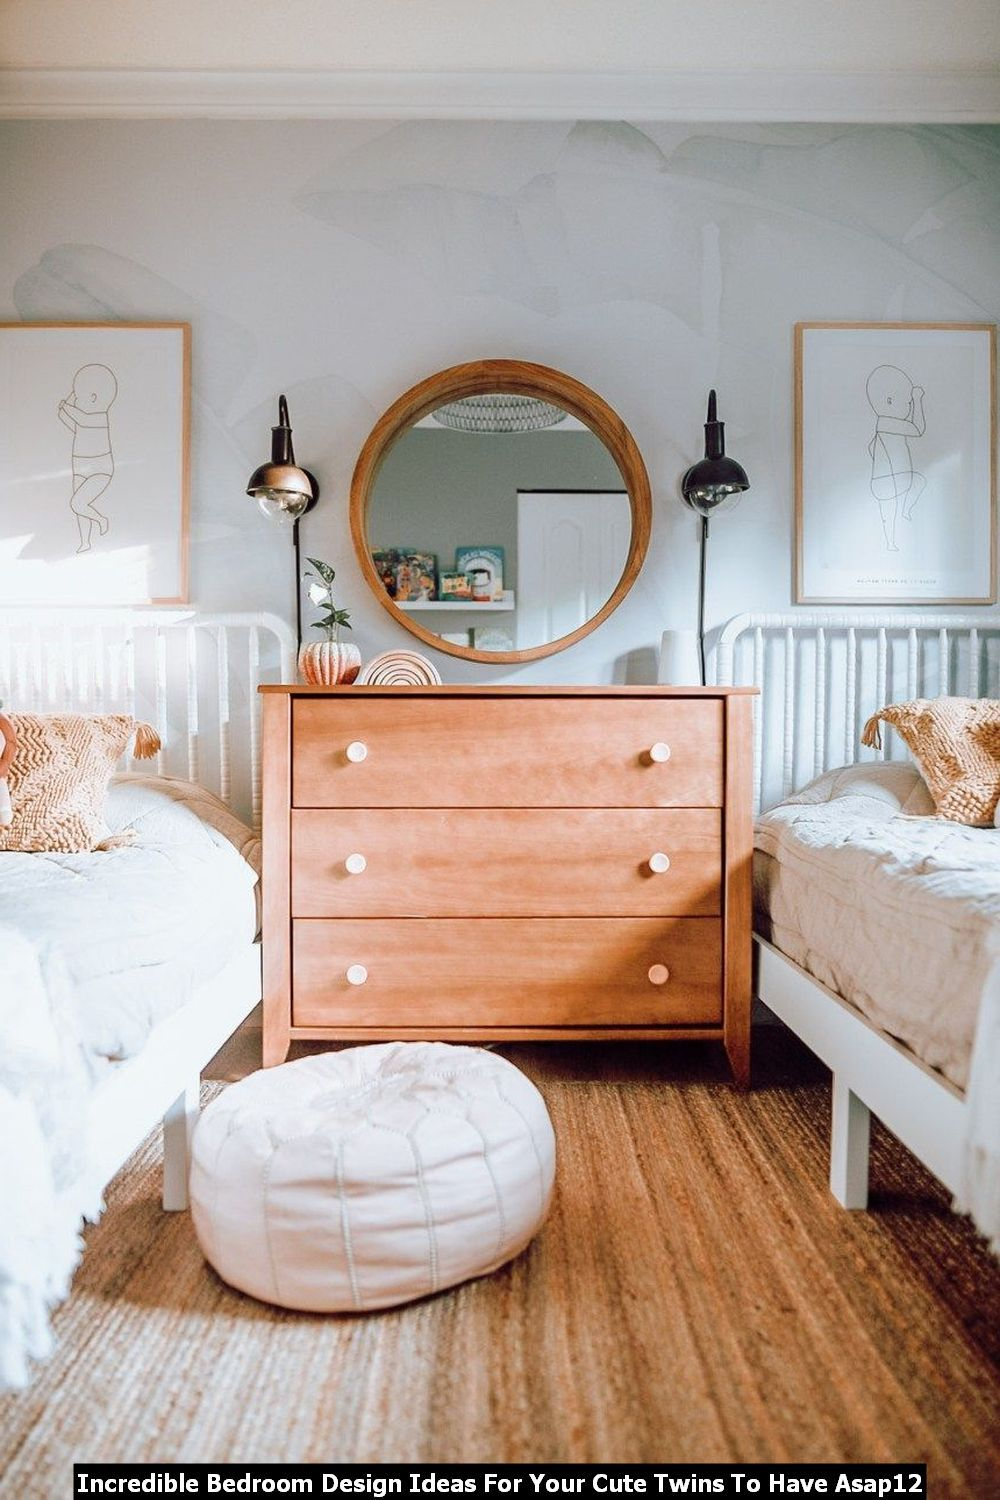 Adorable 20 Incredible Bedroom Design Ideas For Your Cute Twins To Have Asap In 2020 Twin Bedroom Boys Bedroom Wallpaper Twin Boys Bedroom